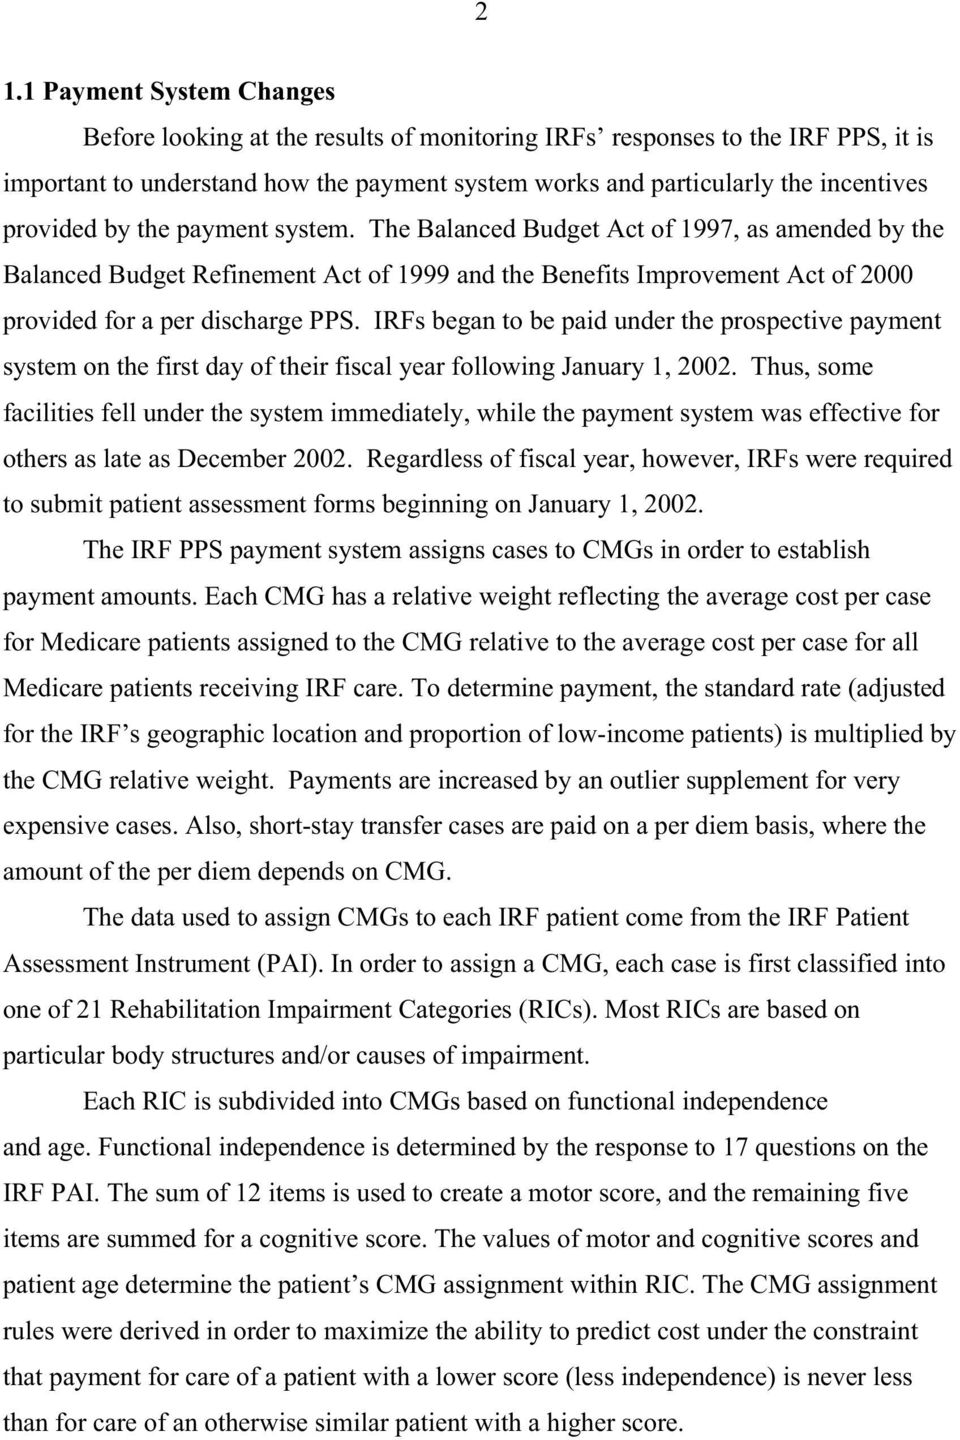 IRFs began to be paid under the prospective payment system on the first day of their fiscal year following January 1, 2002.